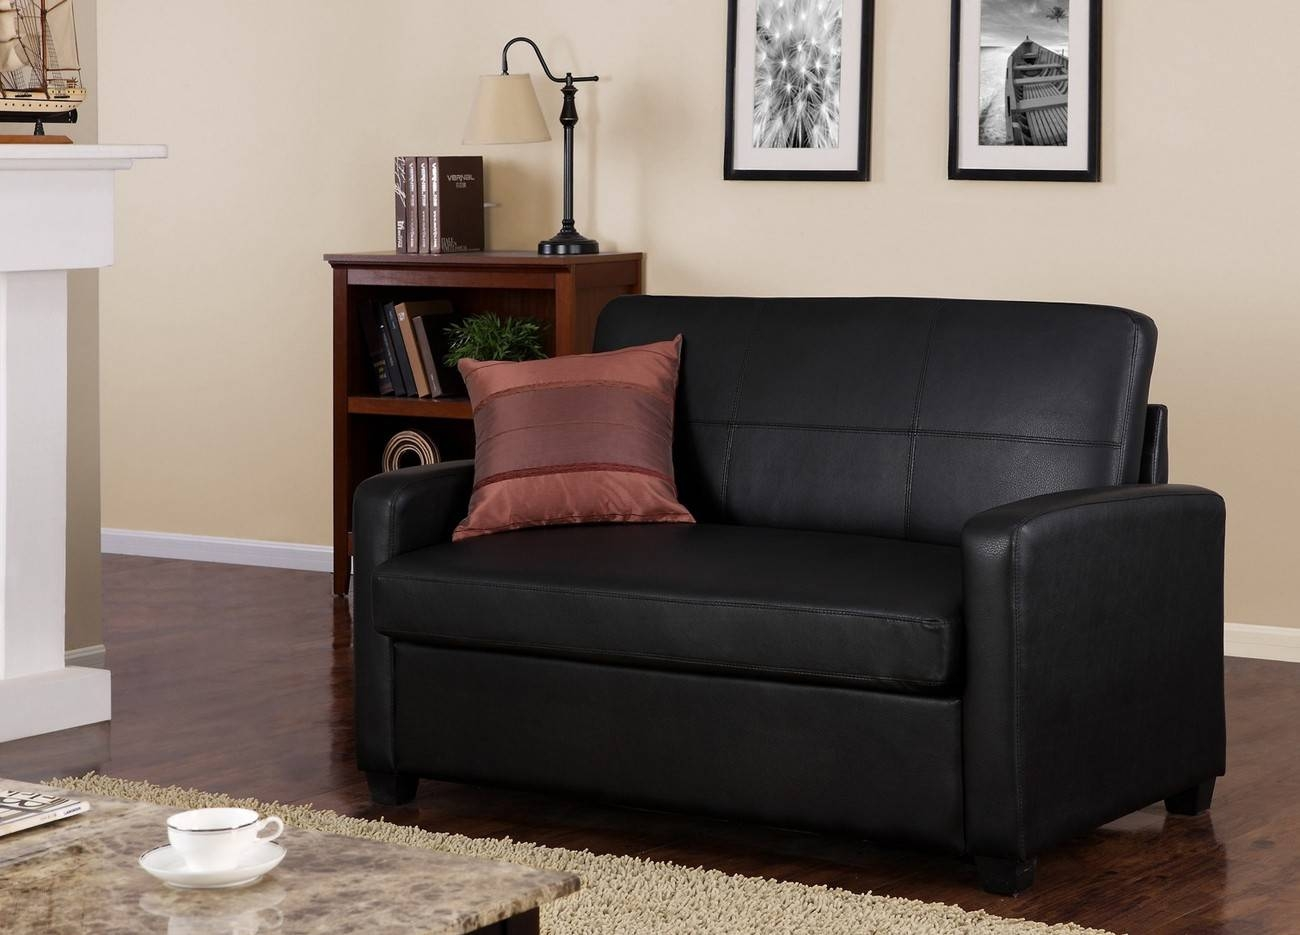 Mainstays | Black Faux Leather Sleeper Sofa for Mainstays Sleeper Sofas (Image 13 of 15)